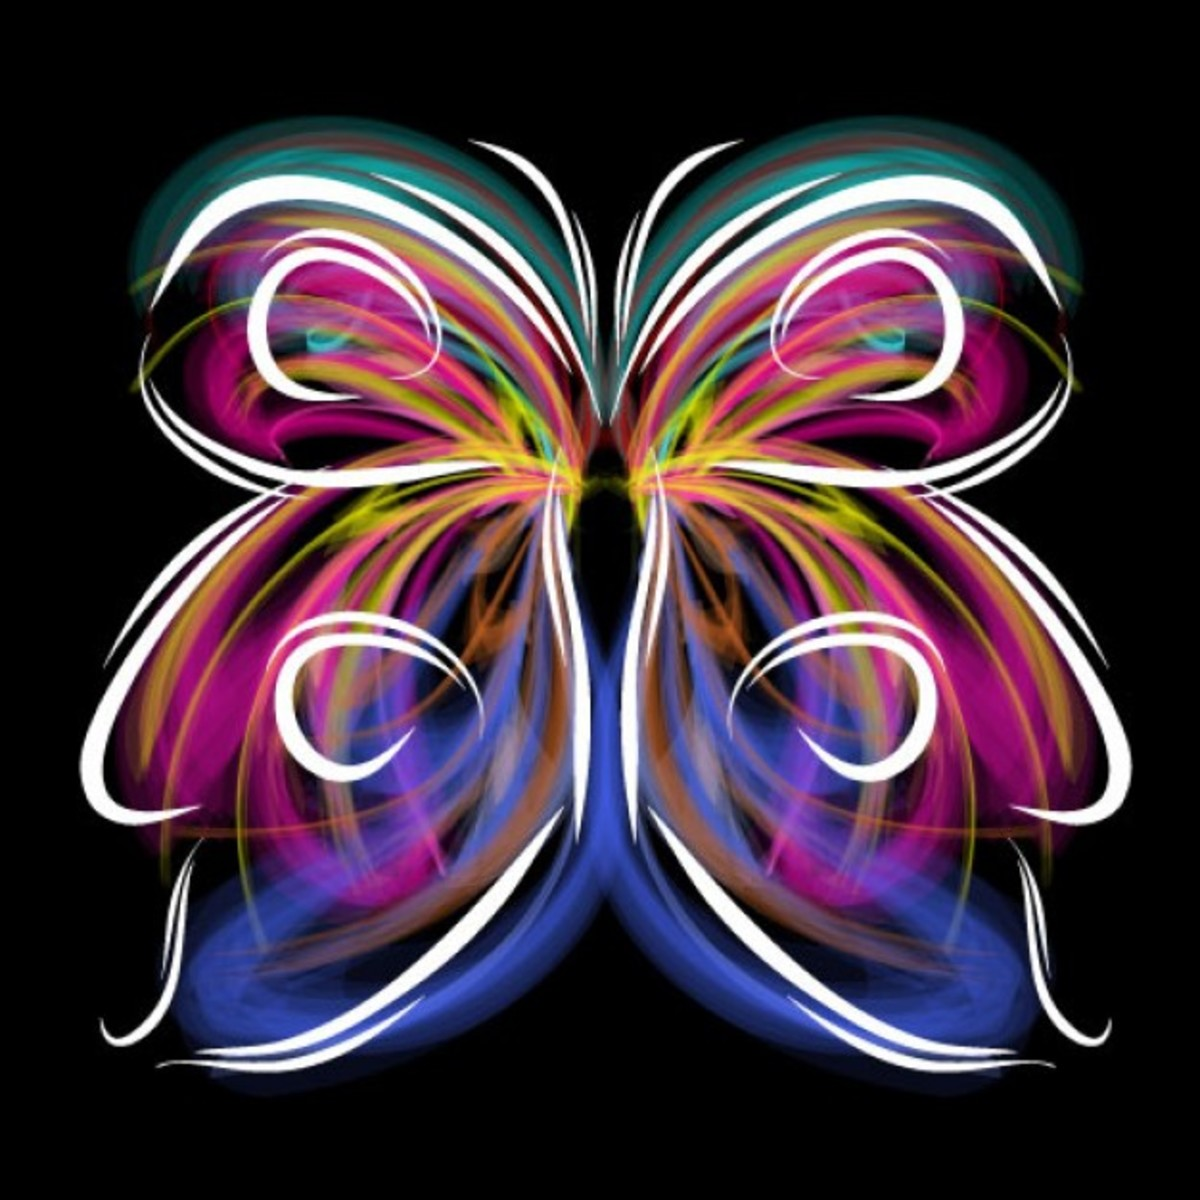 Colored Butterfly Line Drawing on Black Background